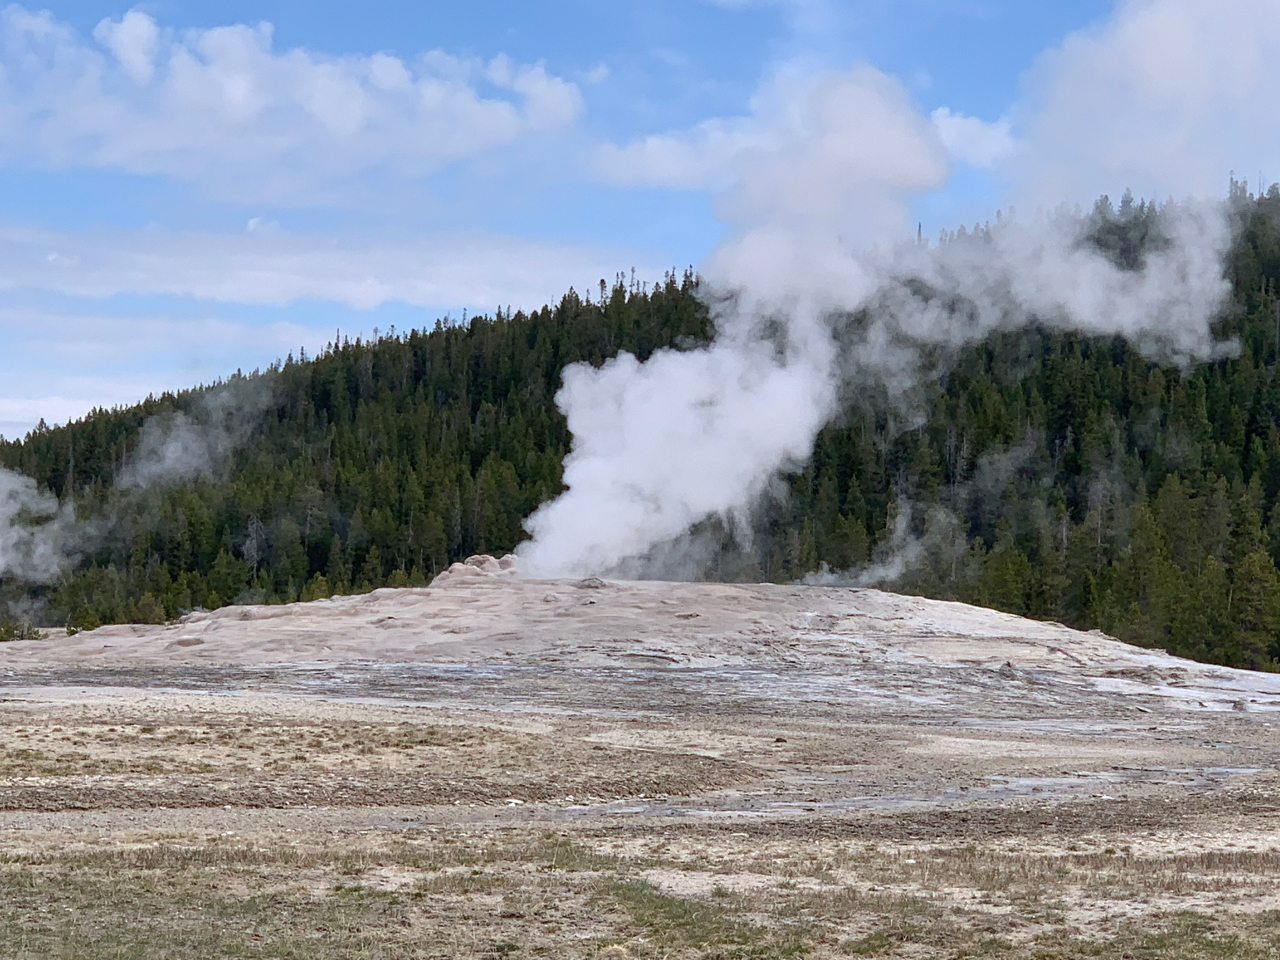 Old Faithful Geyser at Yellowstone National Park, Day 7 of American Road Trip